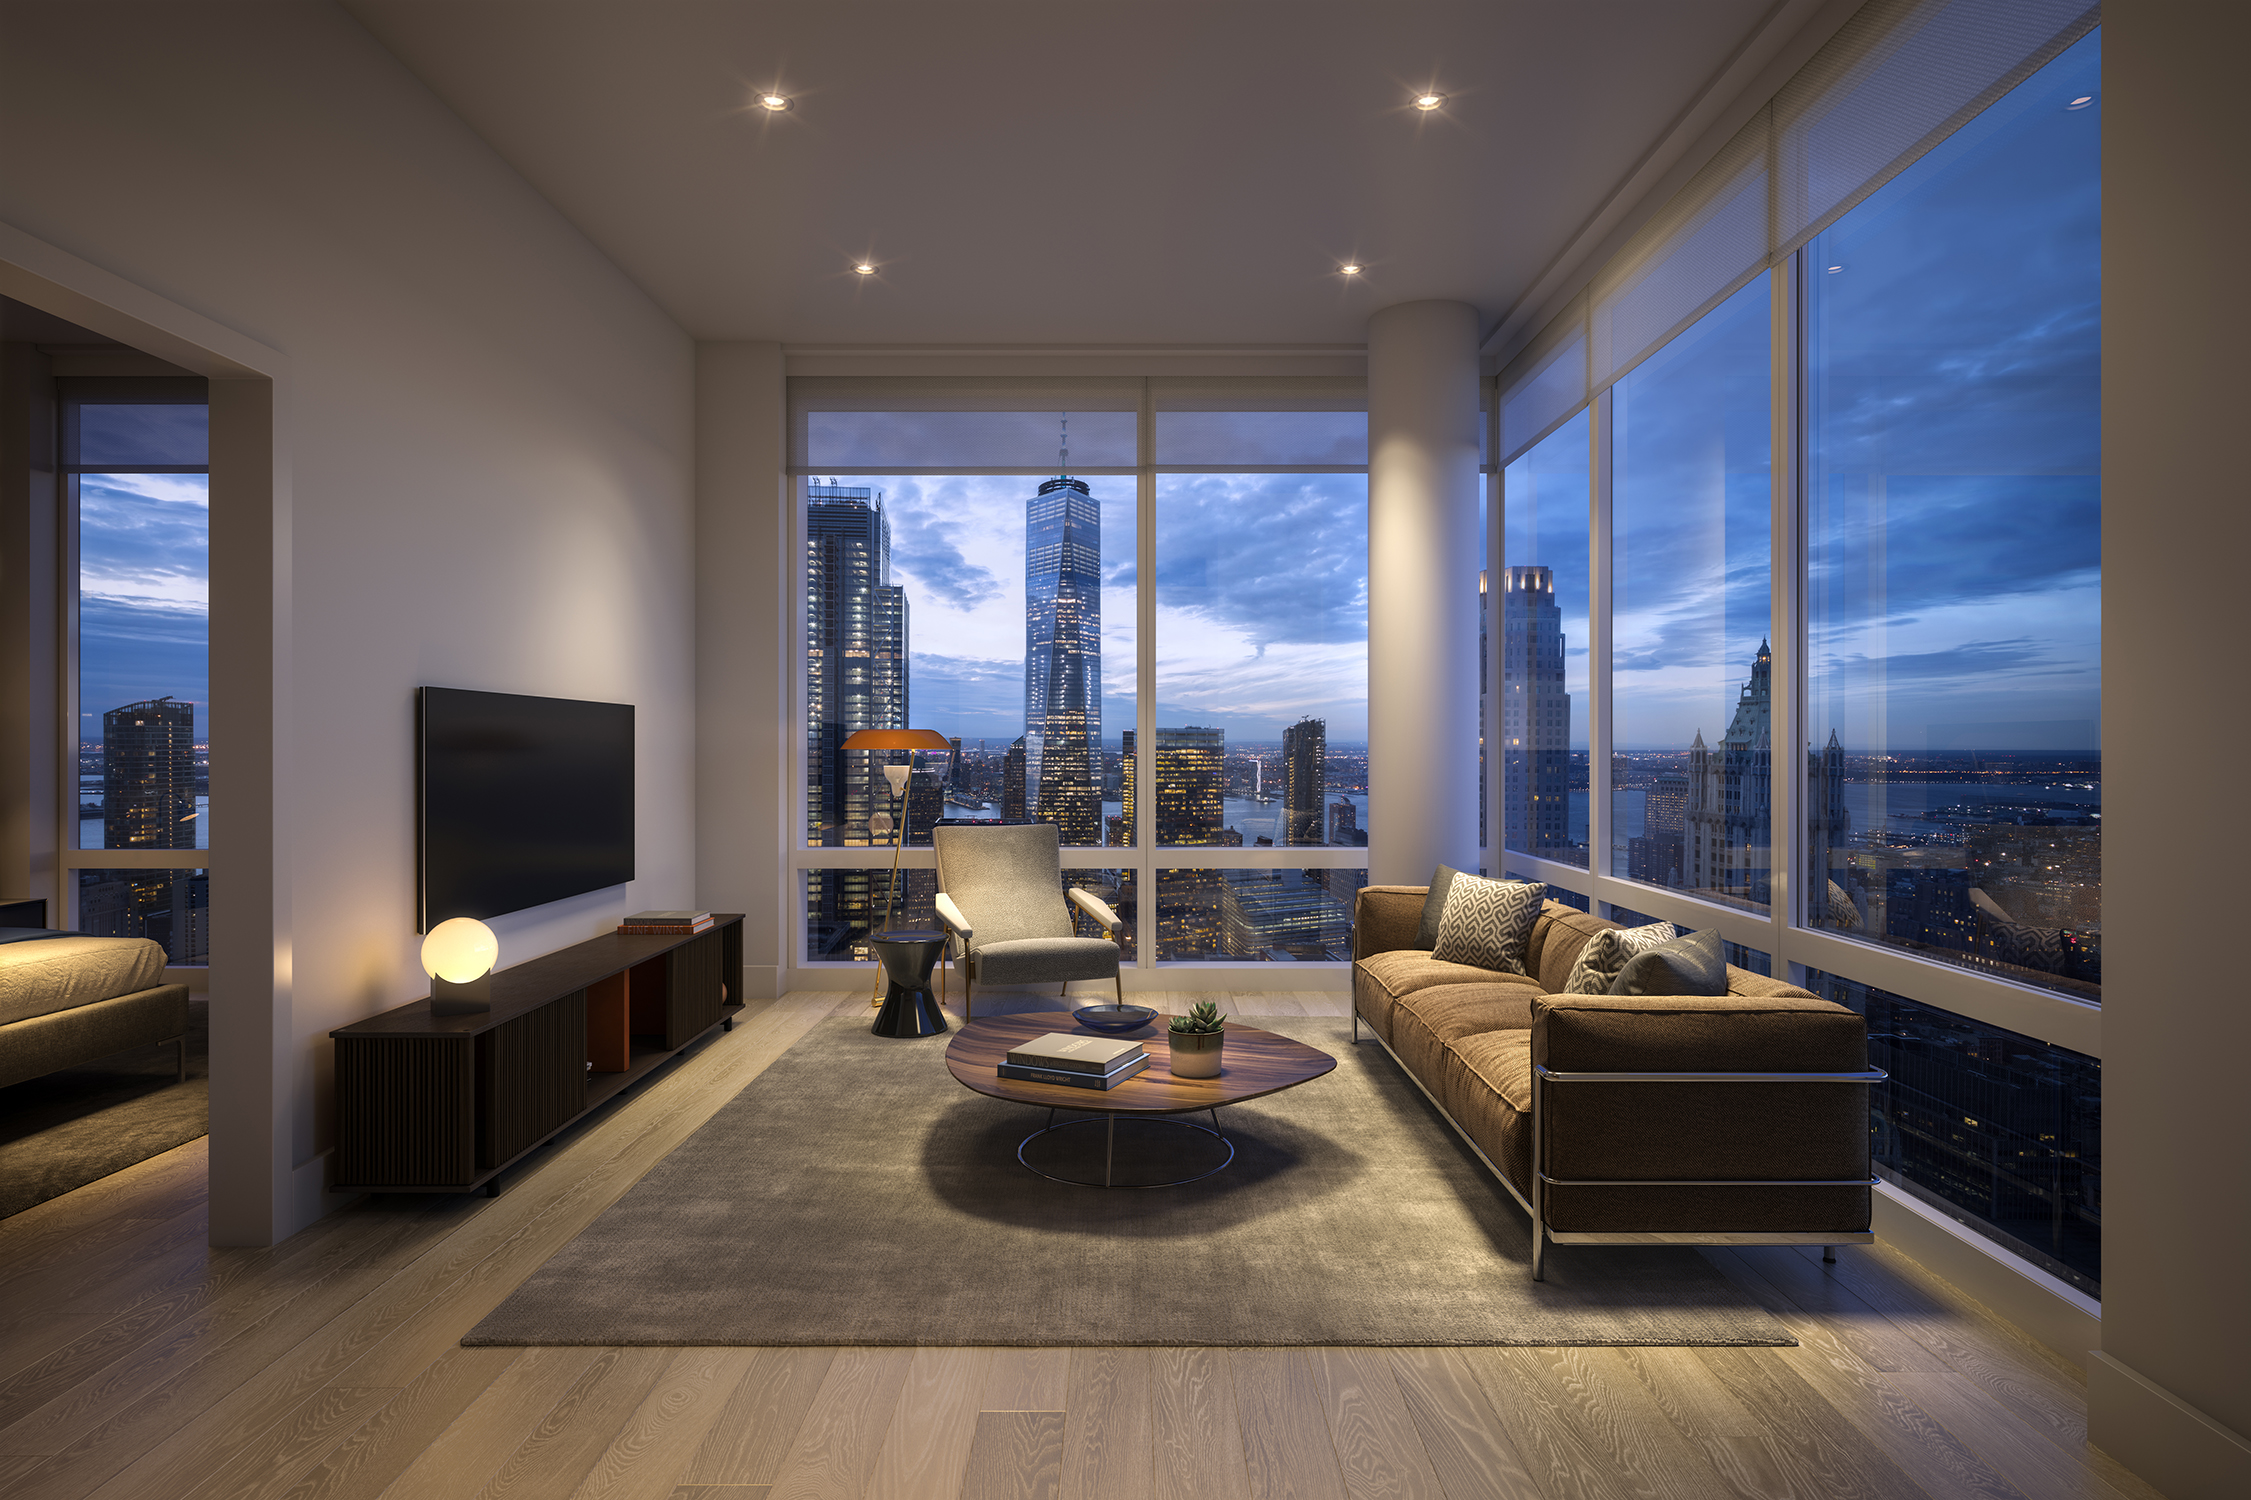 A Fidi Luxury One Bedroom Where You Can Pay Homage To The